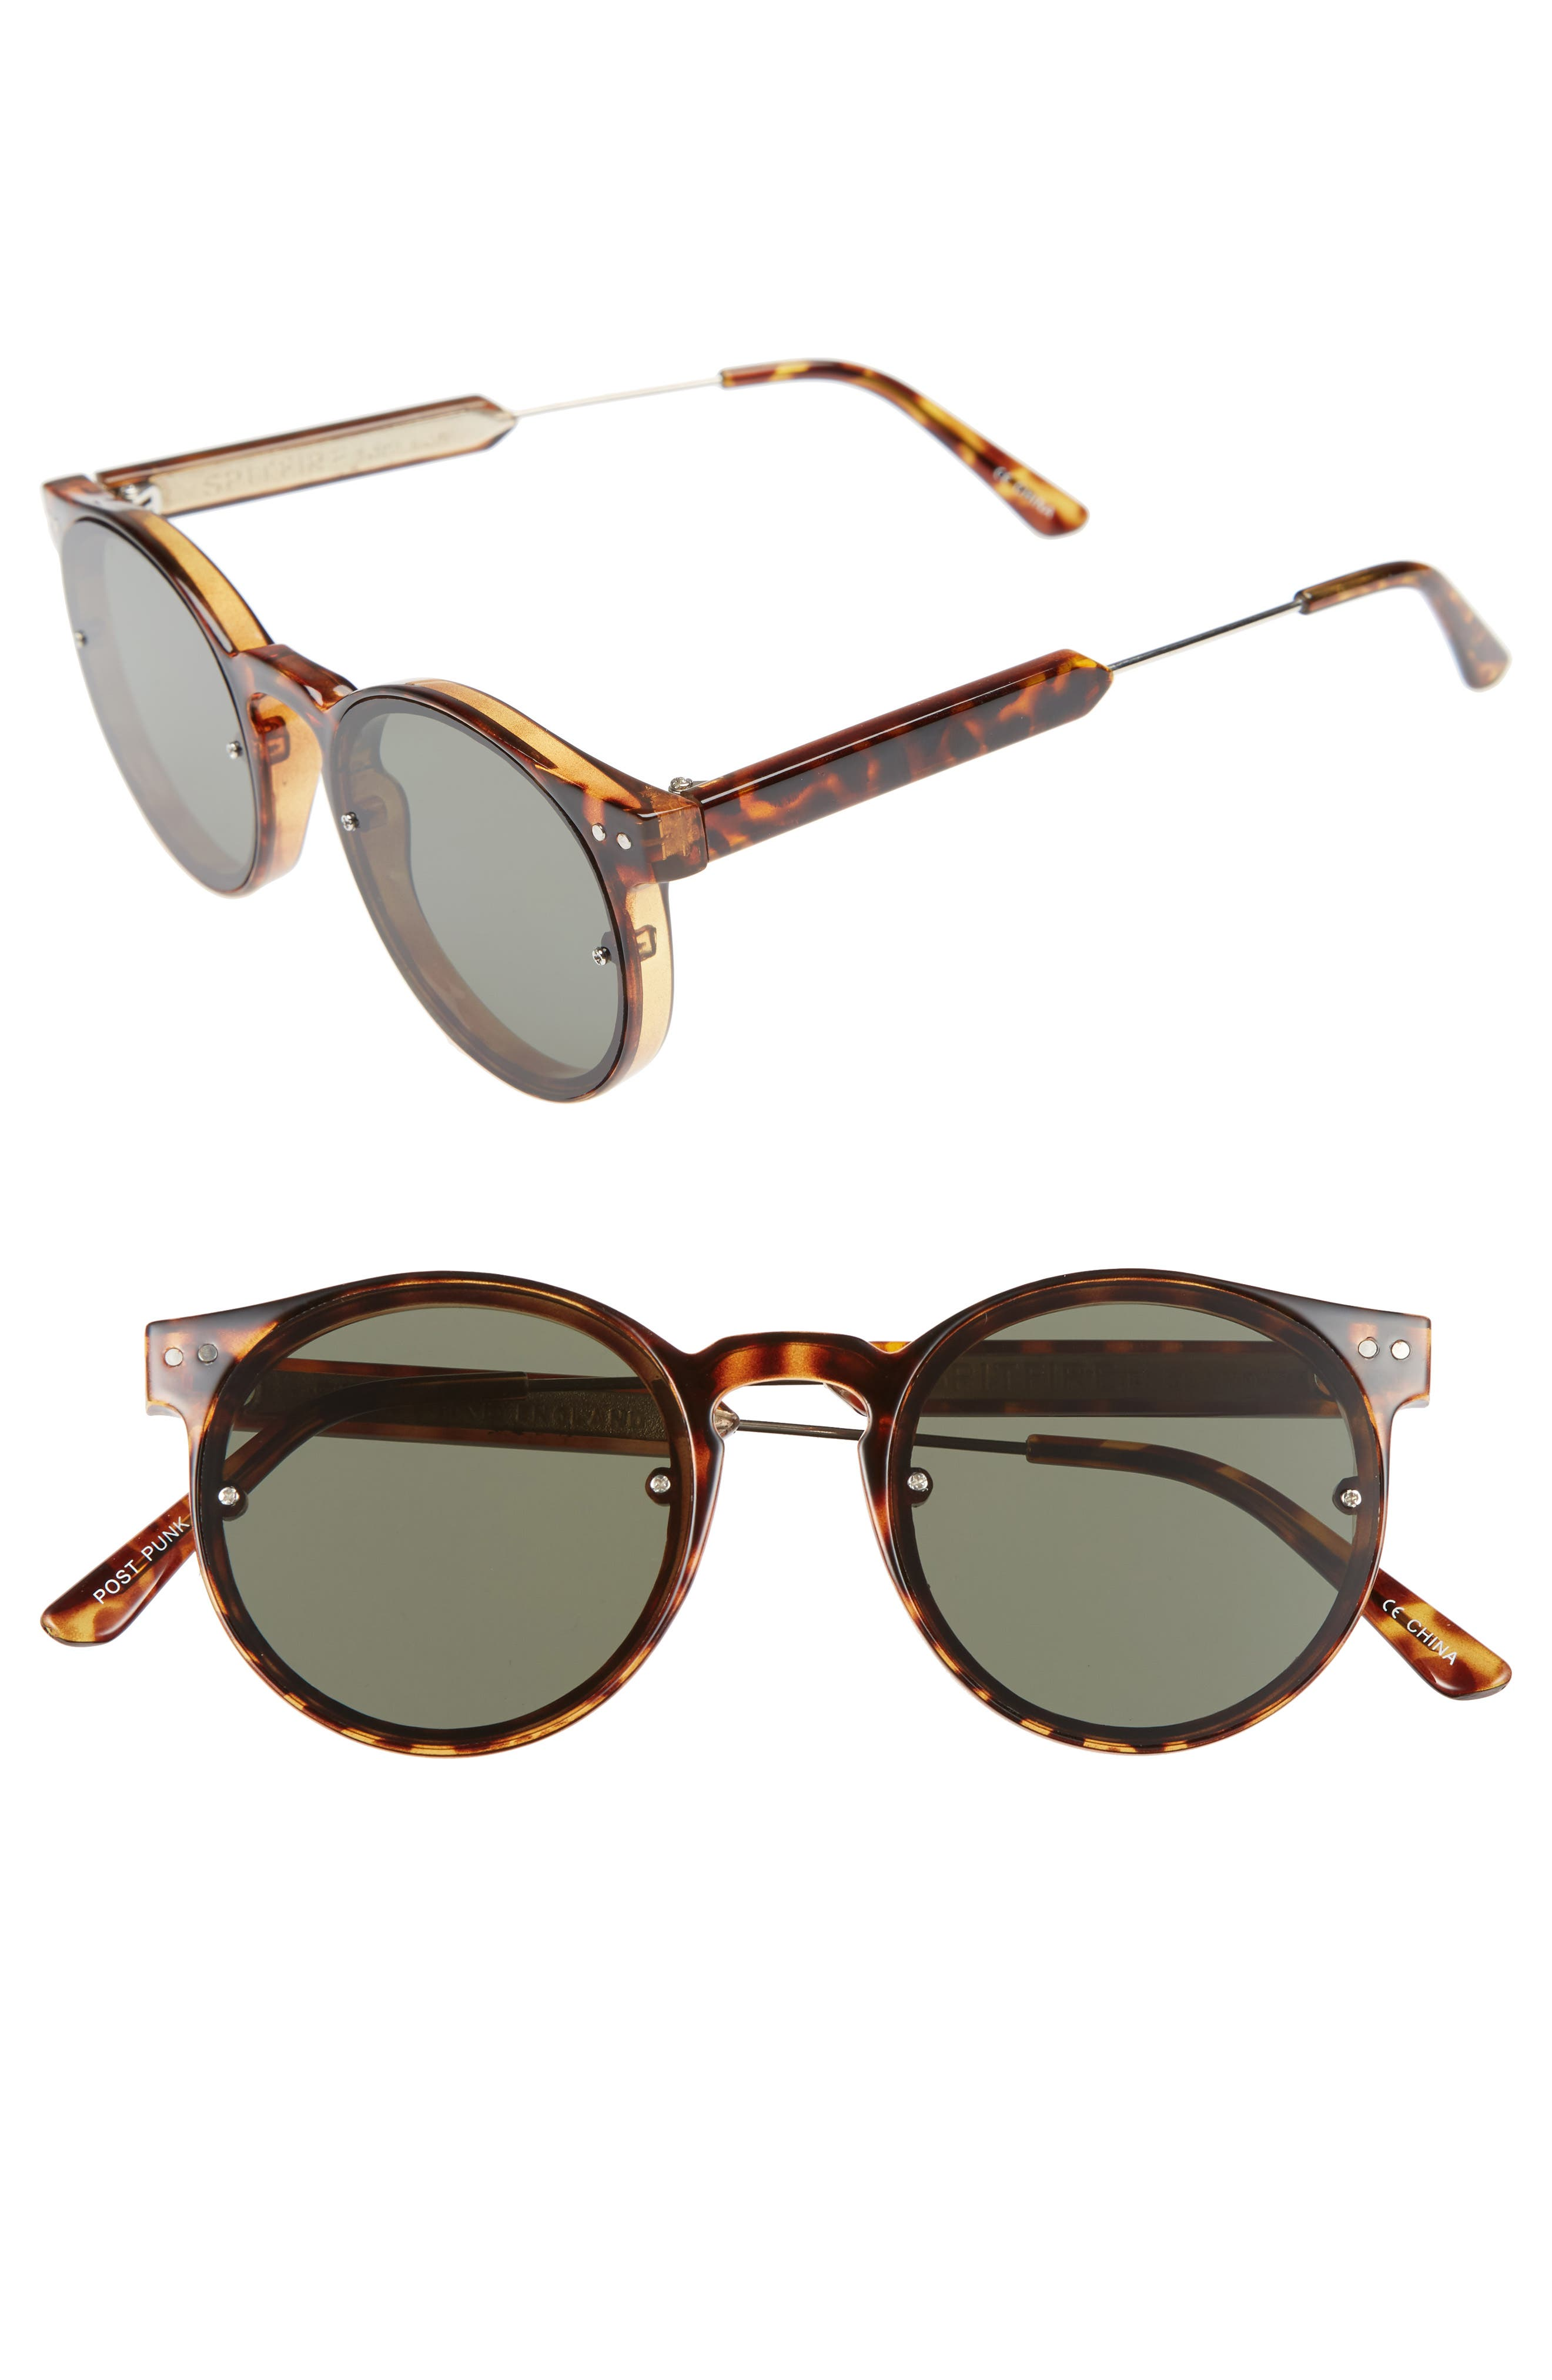 Alternate Image 1 Selected - Spitfire Post Punk 48mm Round Mirrored Lens Sunglasses